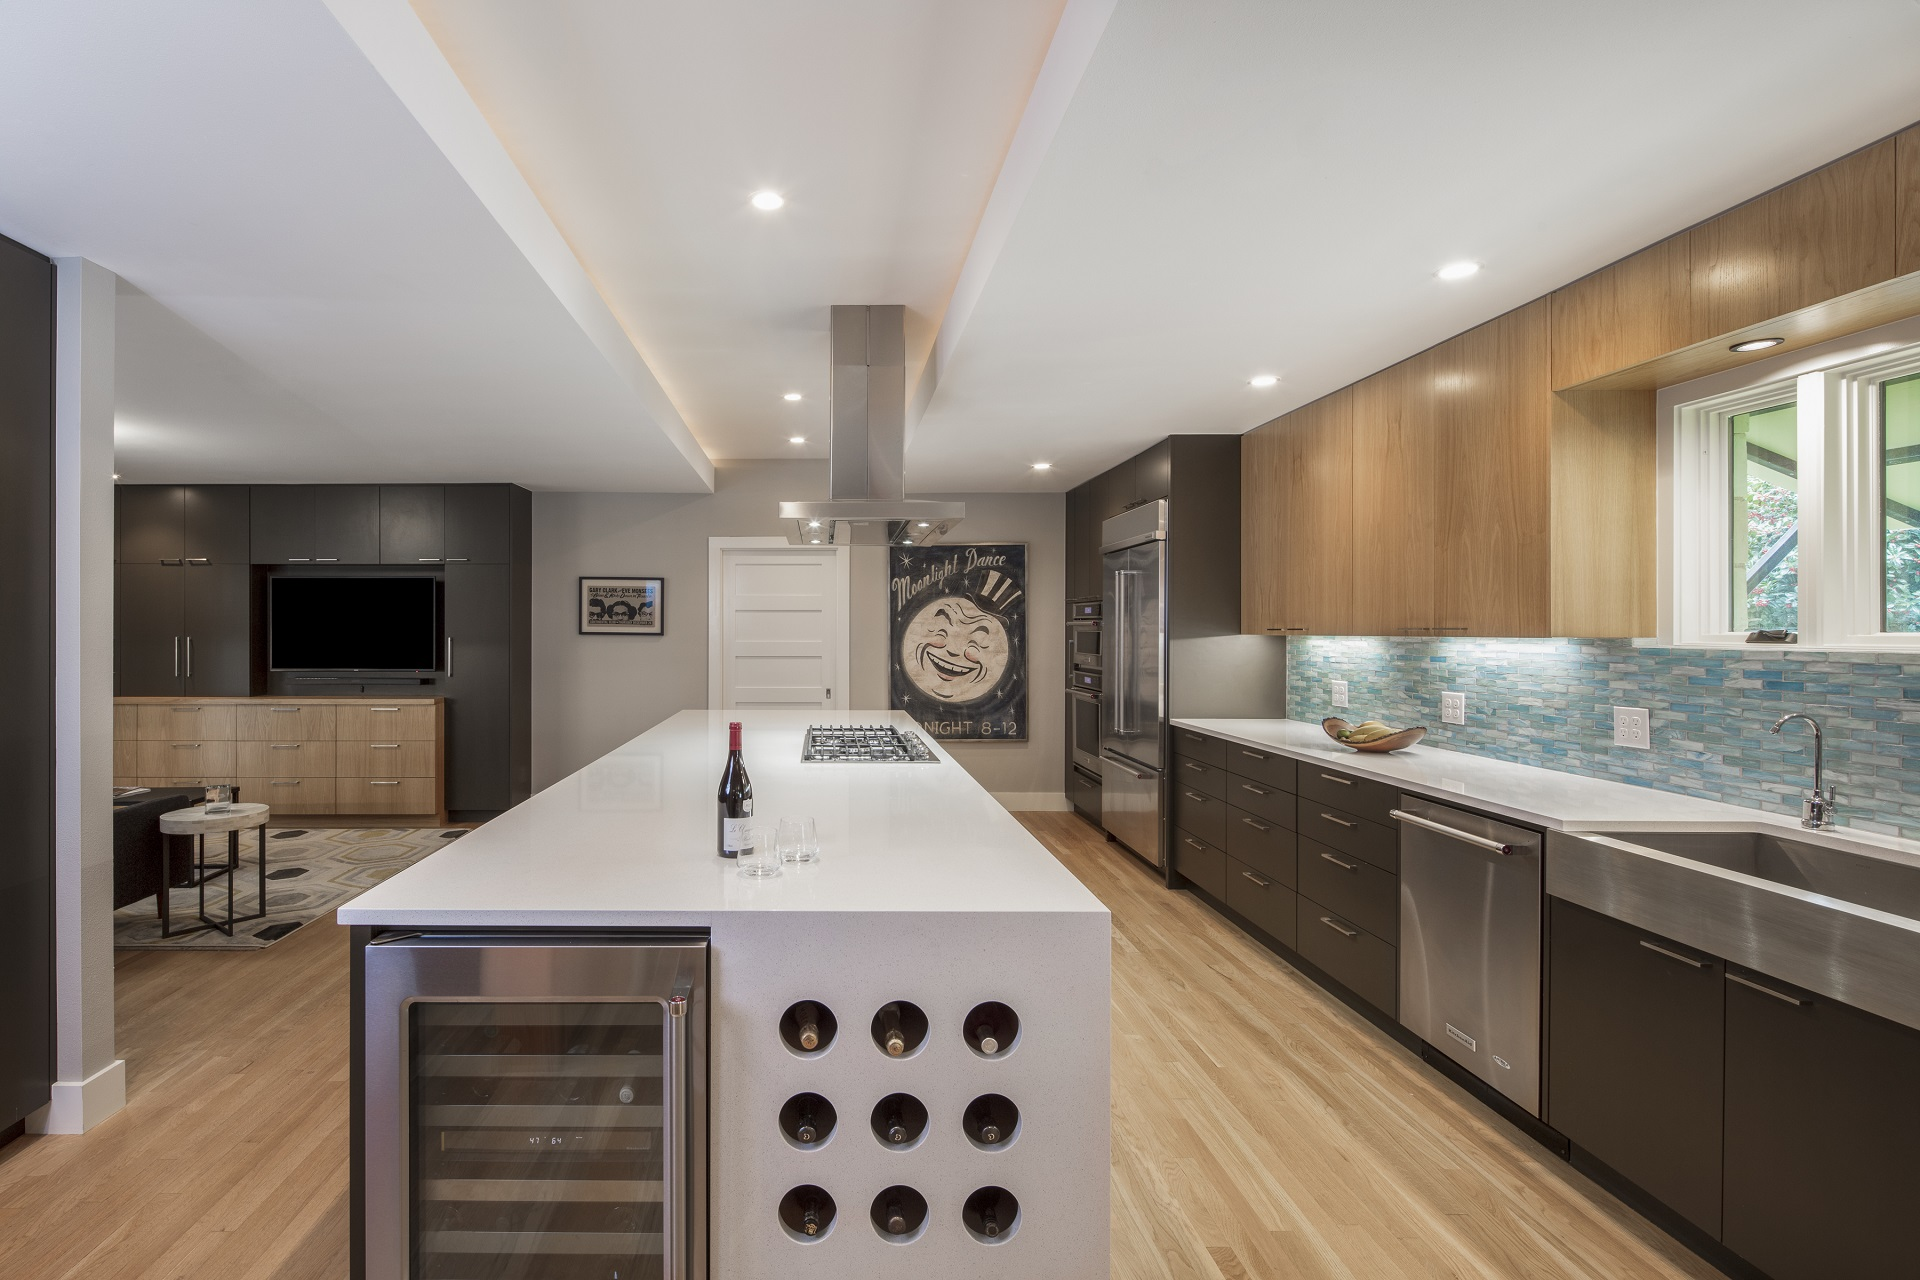 A12 KITCHEN REMODEL